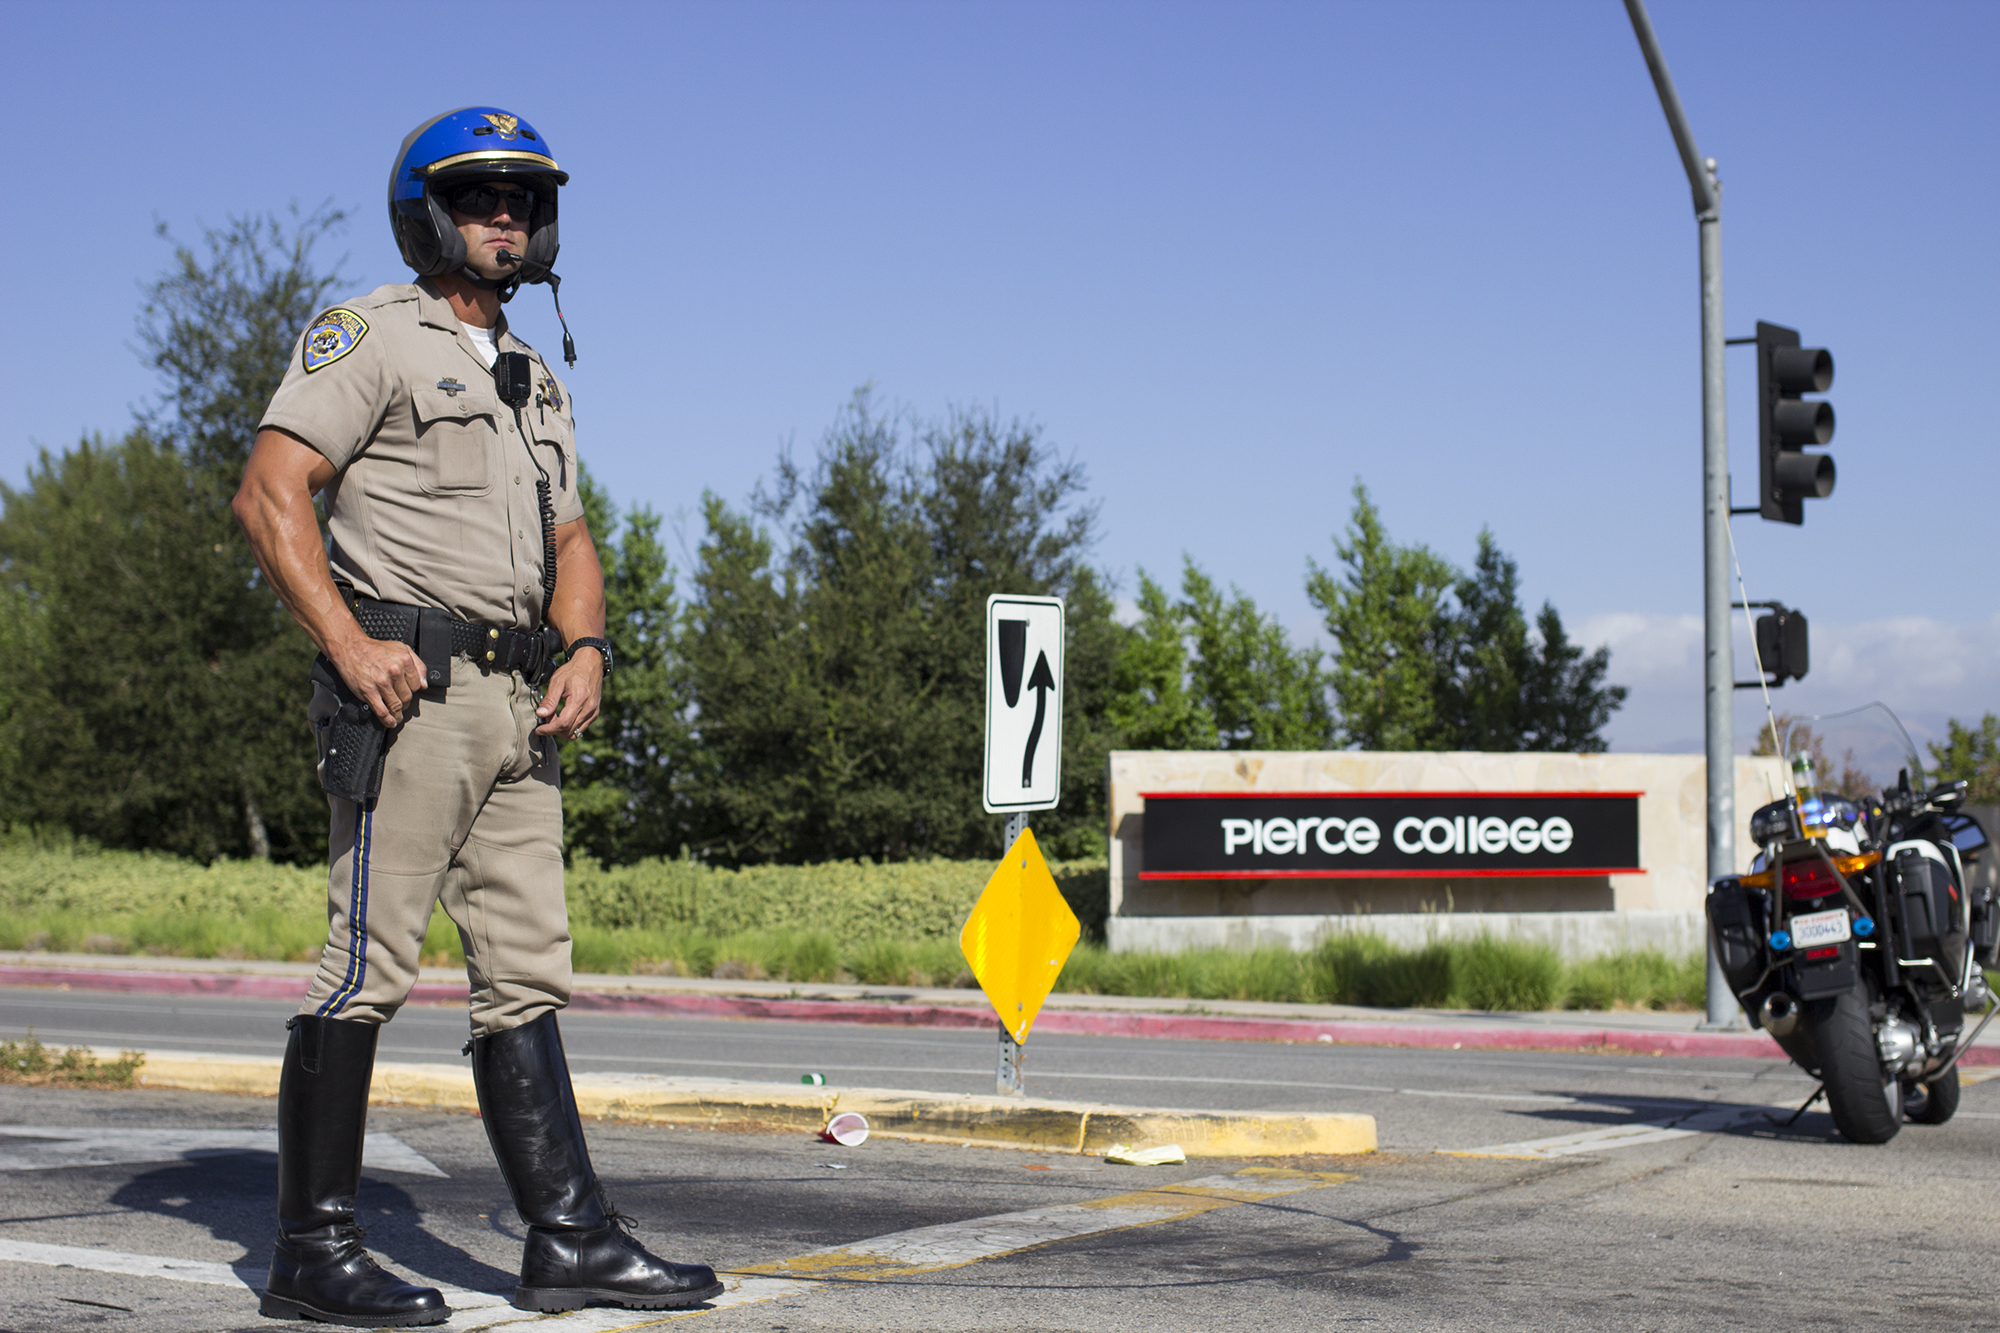 PHOTO SLIDESHOW: Campus locked down due to possible threat